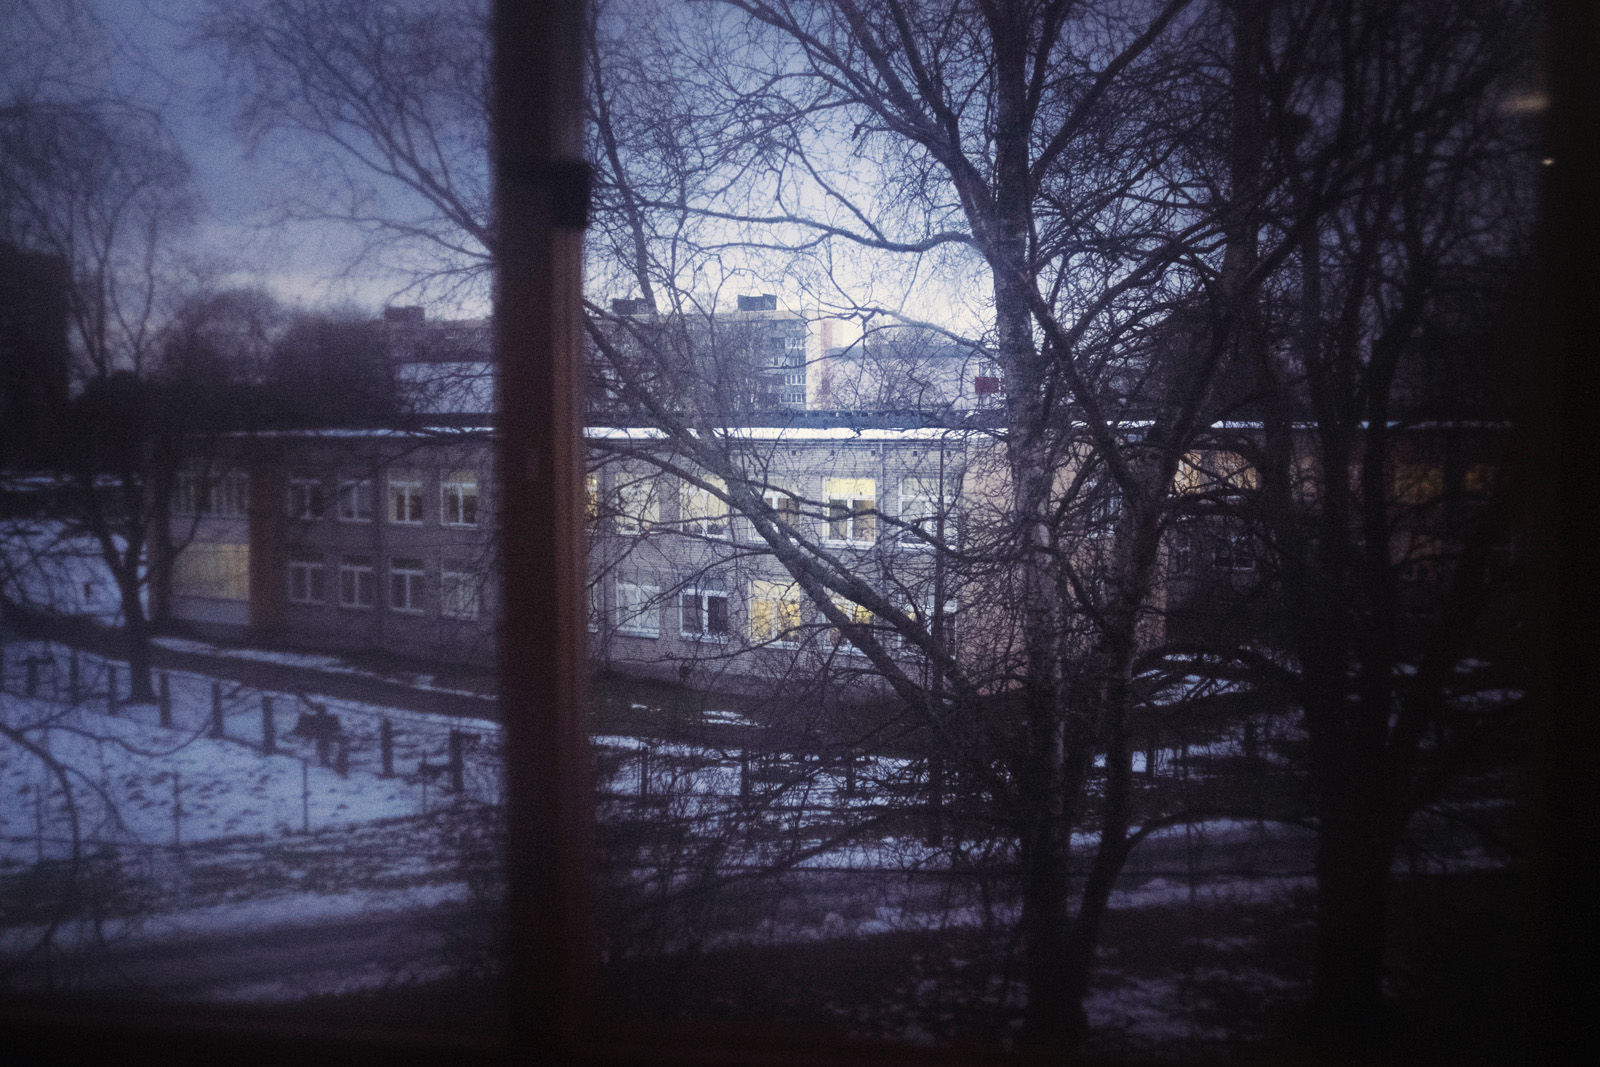 The view from Tiiu and Vadim's home in Tallinn